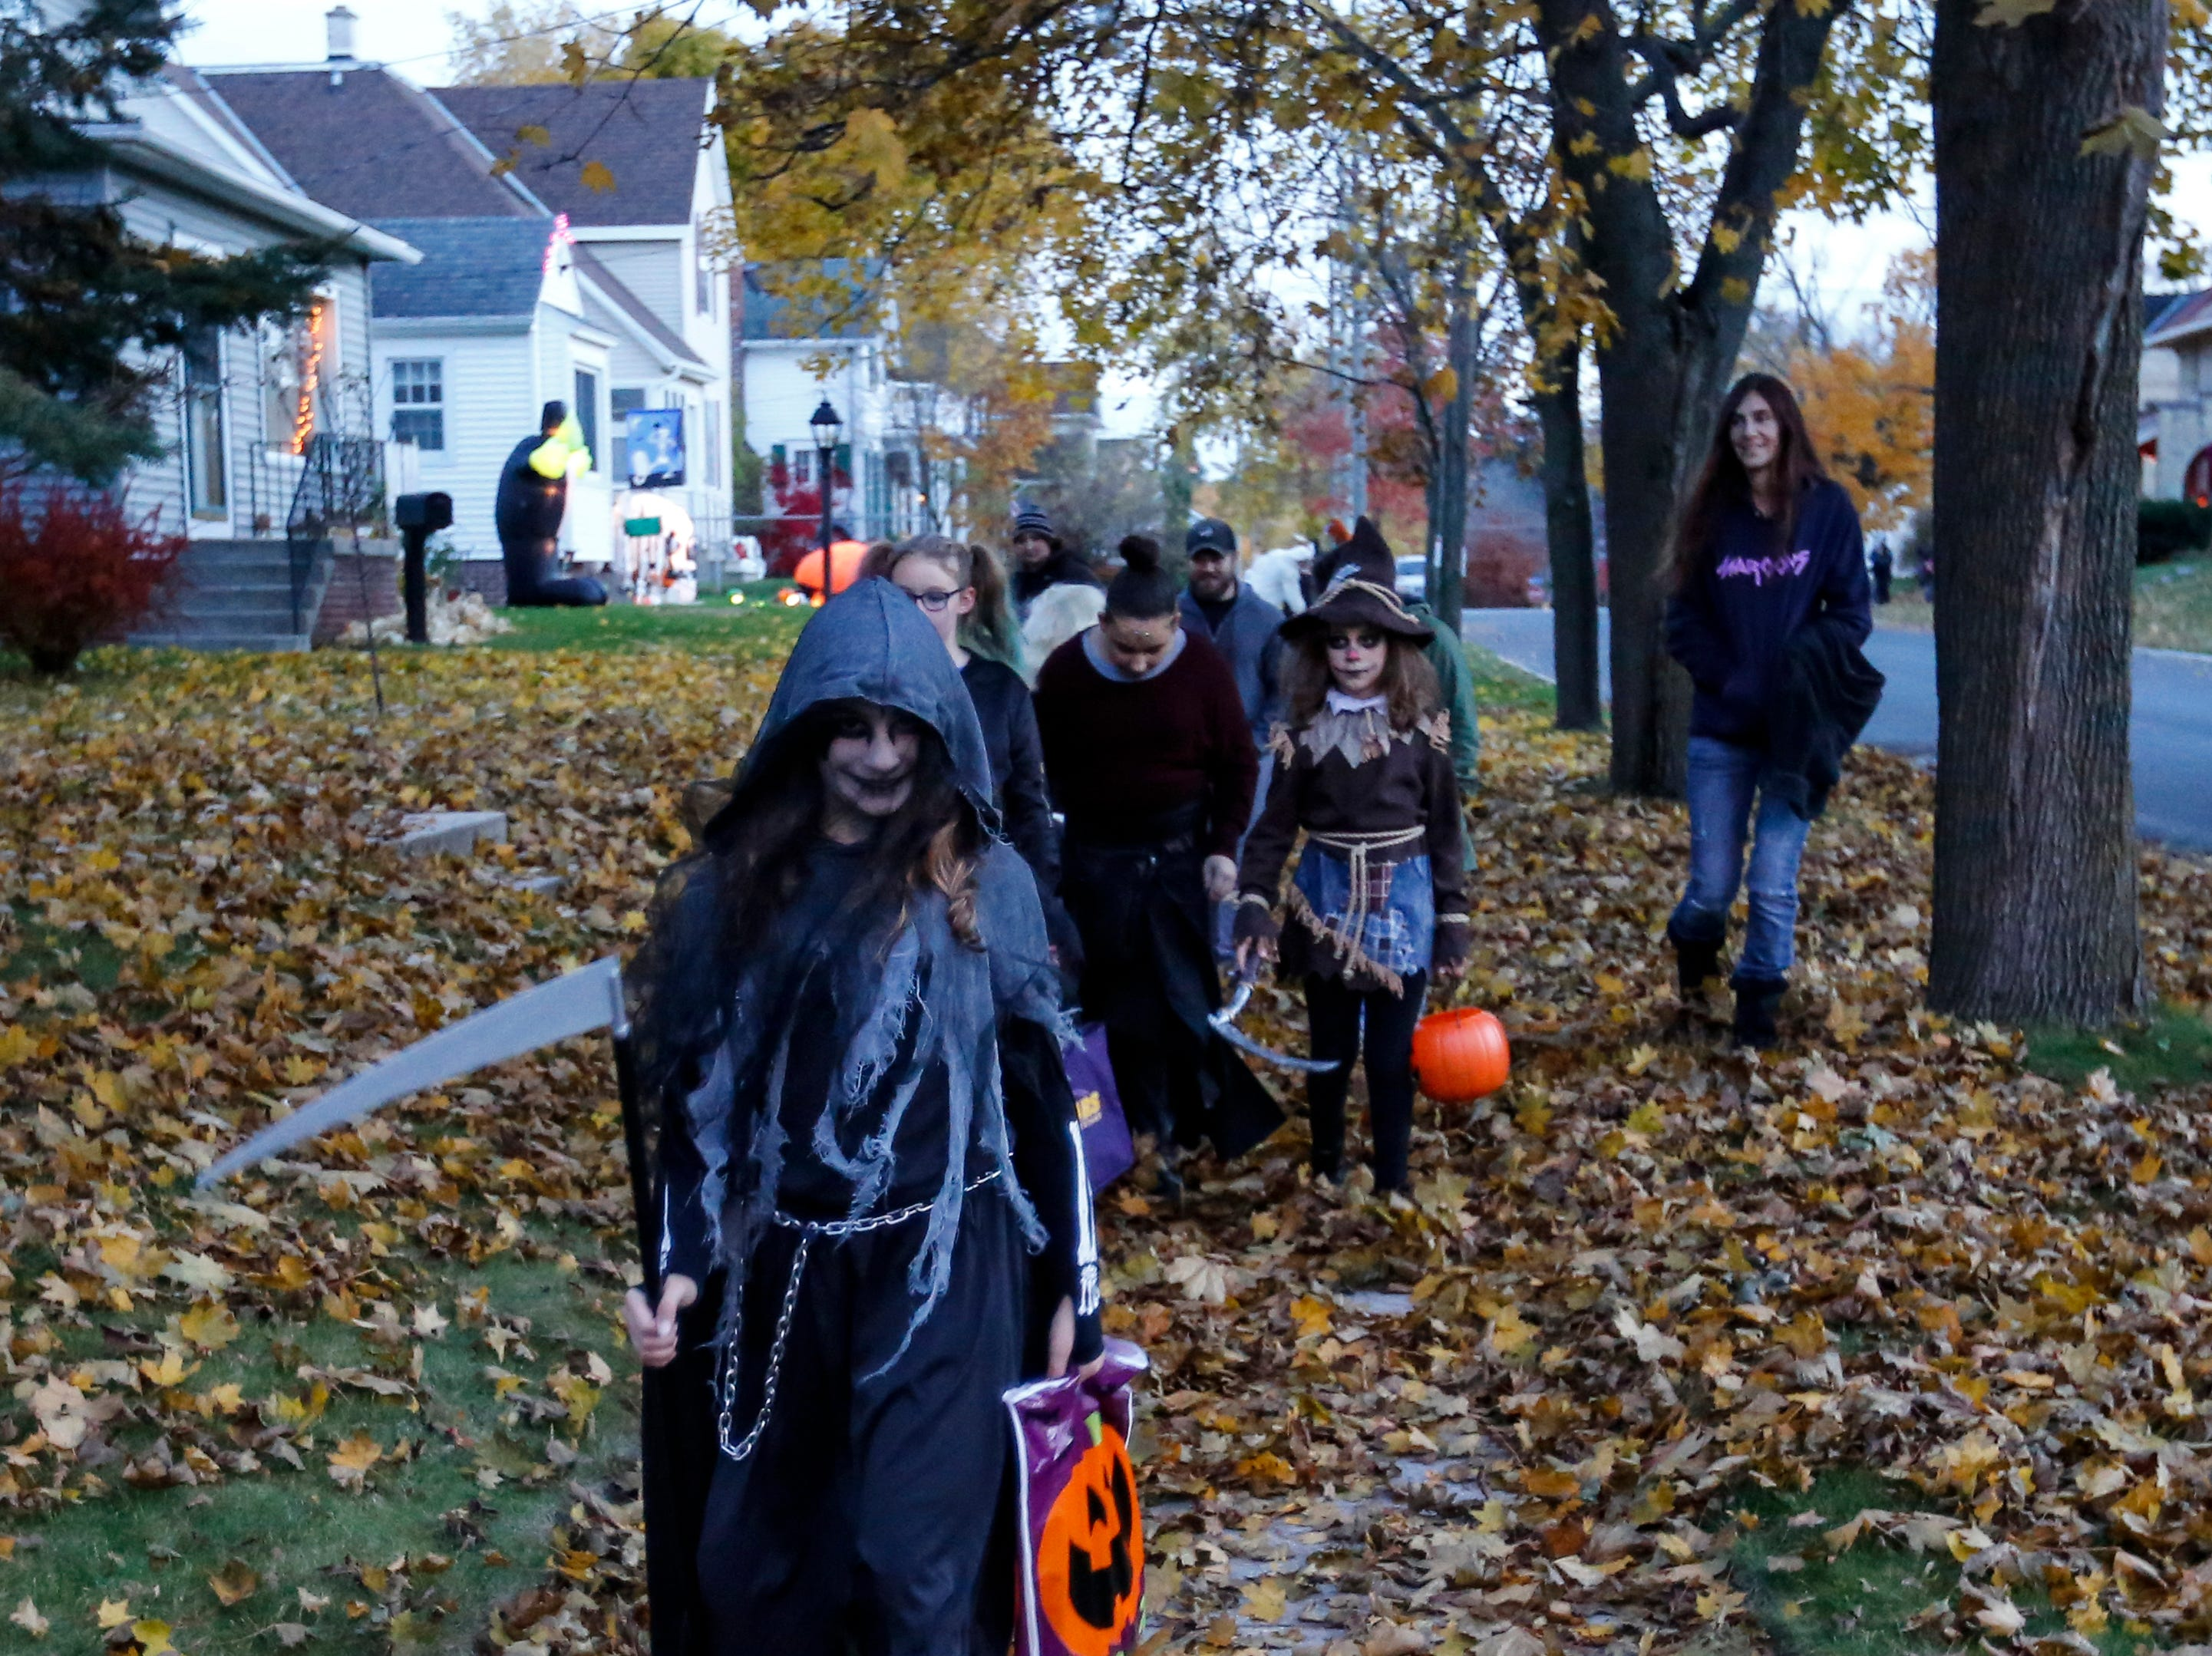 Kids go trick or treating on Halloween Wednesday, October 31, 2018, in Manitowoc, Wis. Joshua Clark/USA TODAY NETWORK-Wisconsin